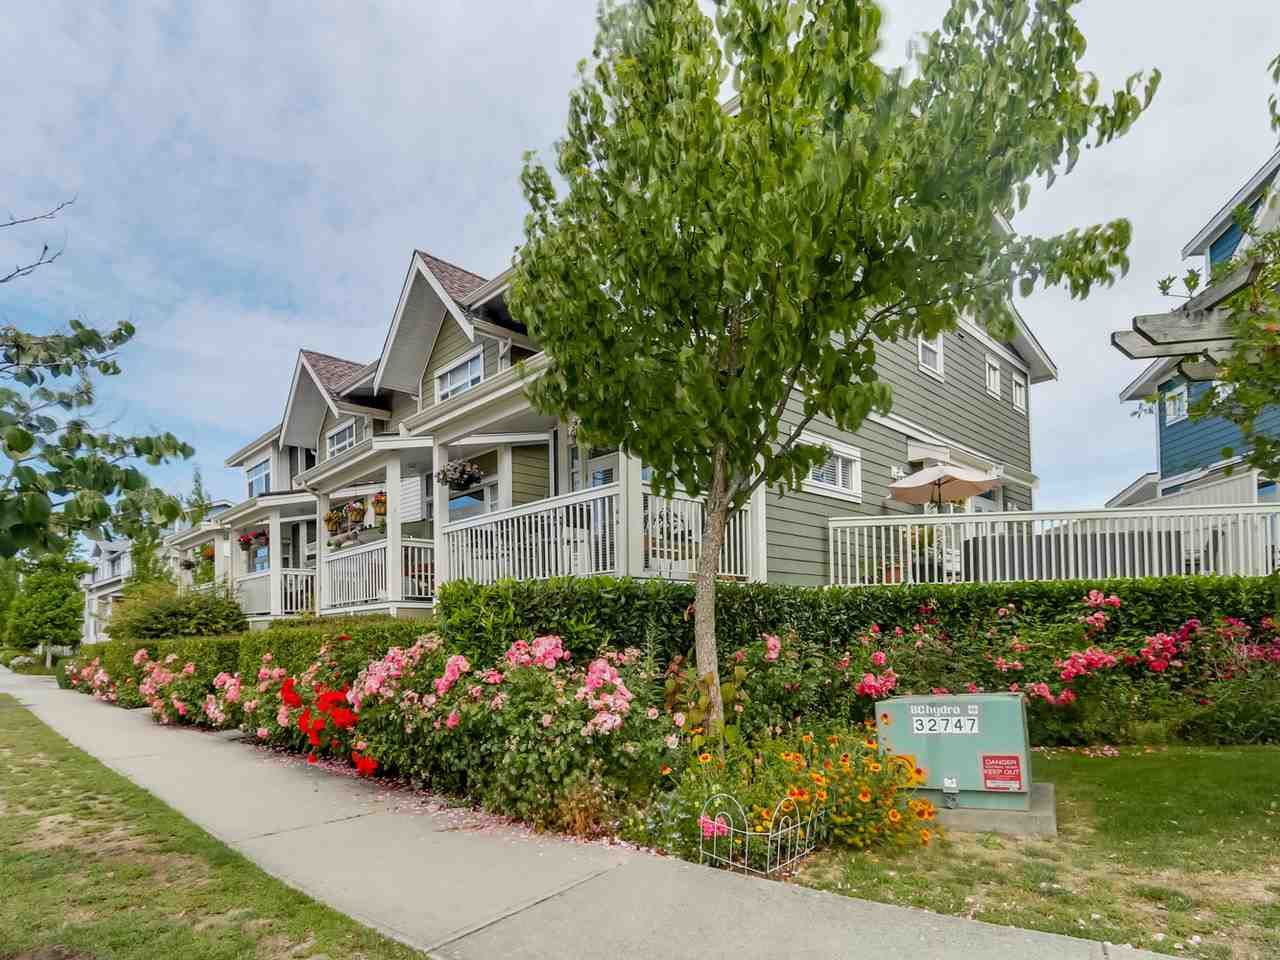 """Main Photo: 4 4311 BAYVIEW Street in Richmond: Steveston South Townhouse for sale in """"4311 BAYVIEW"""" : MLS®# R2083363"""